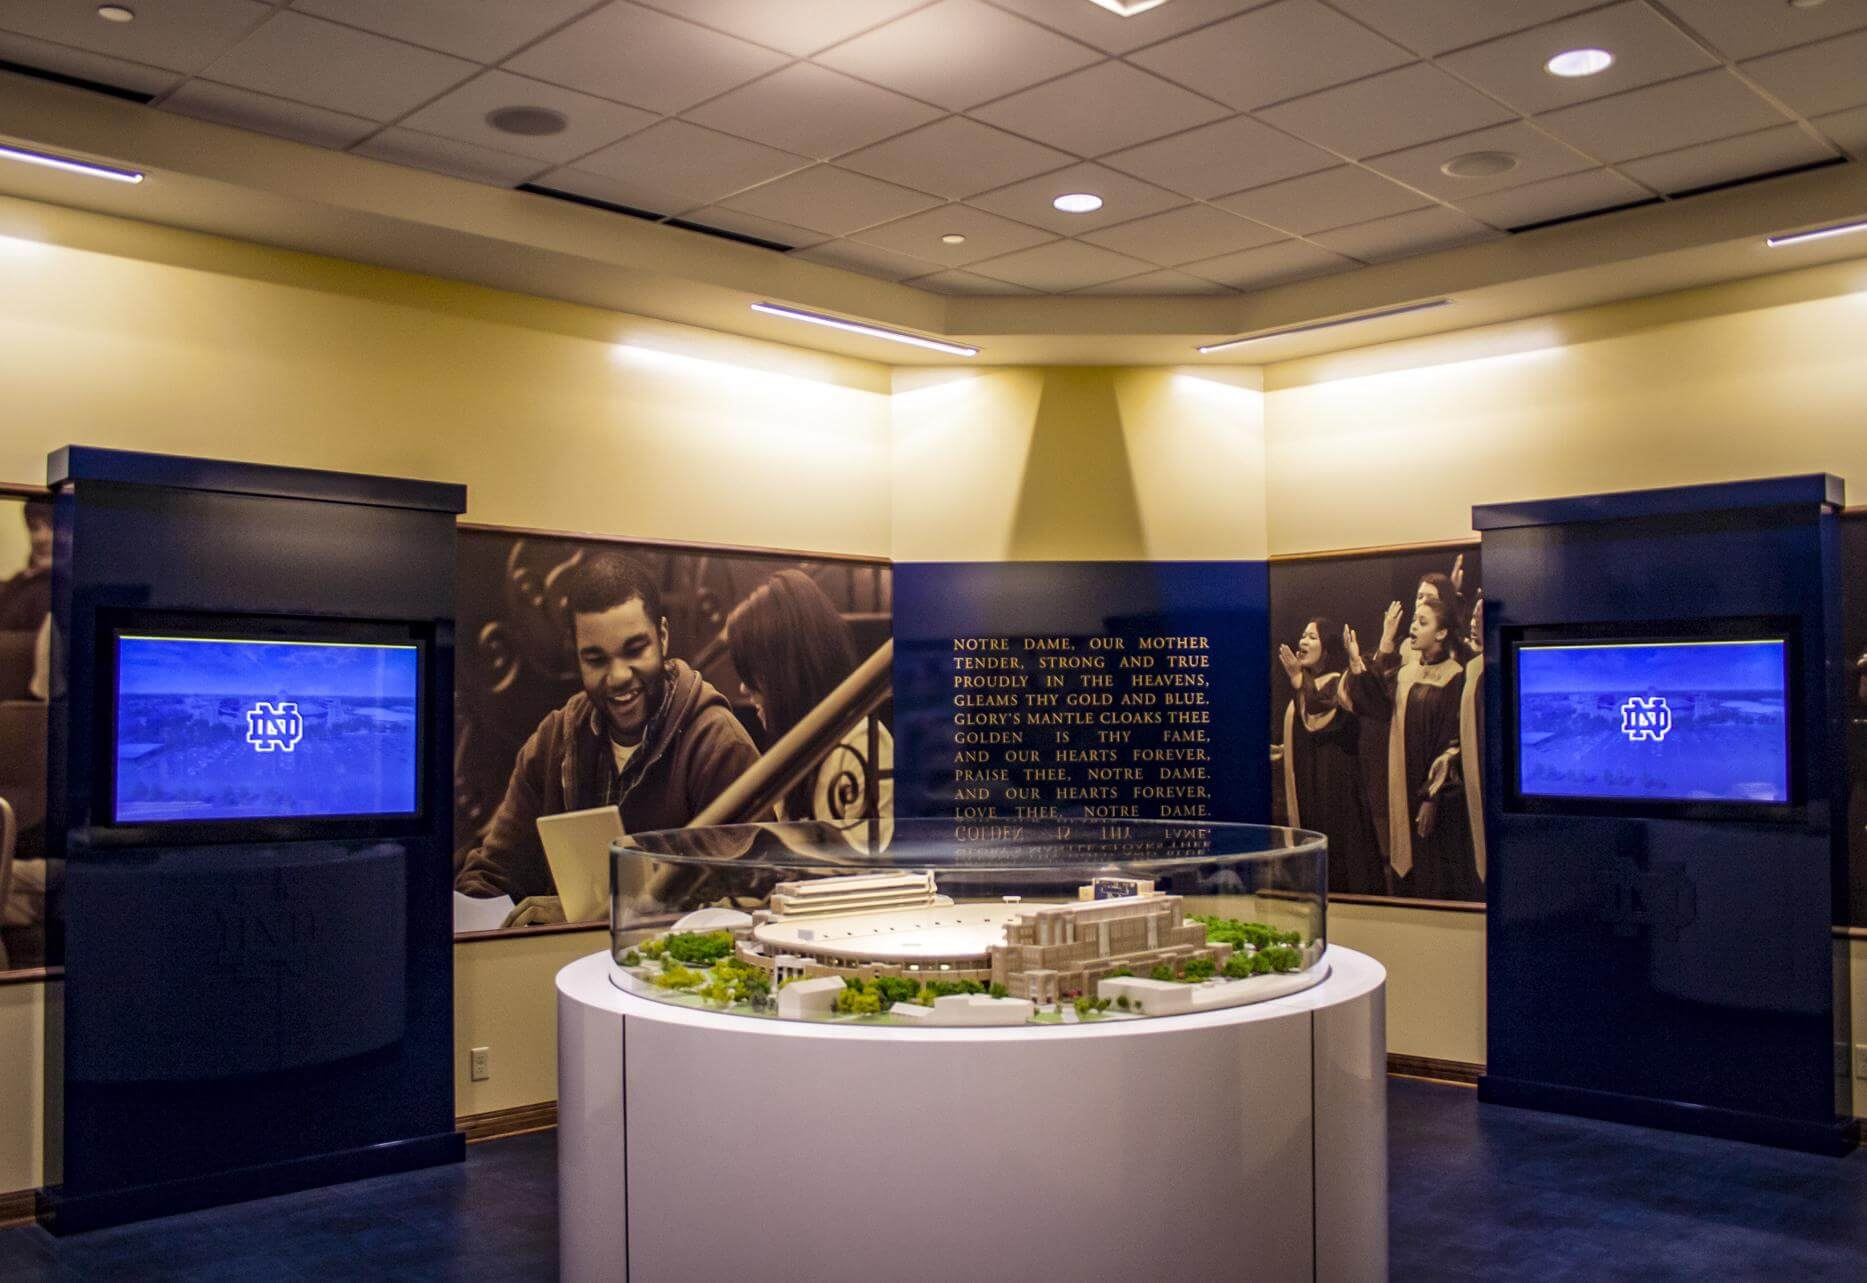 Notre Dame Experience Center